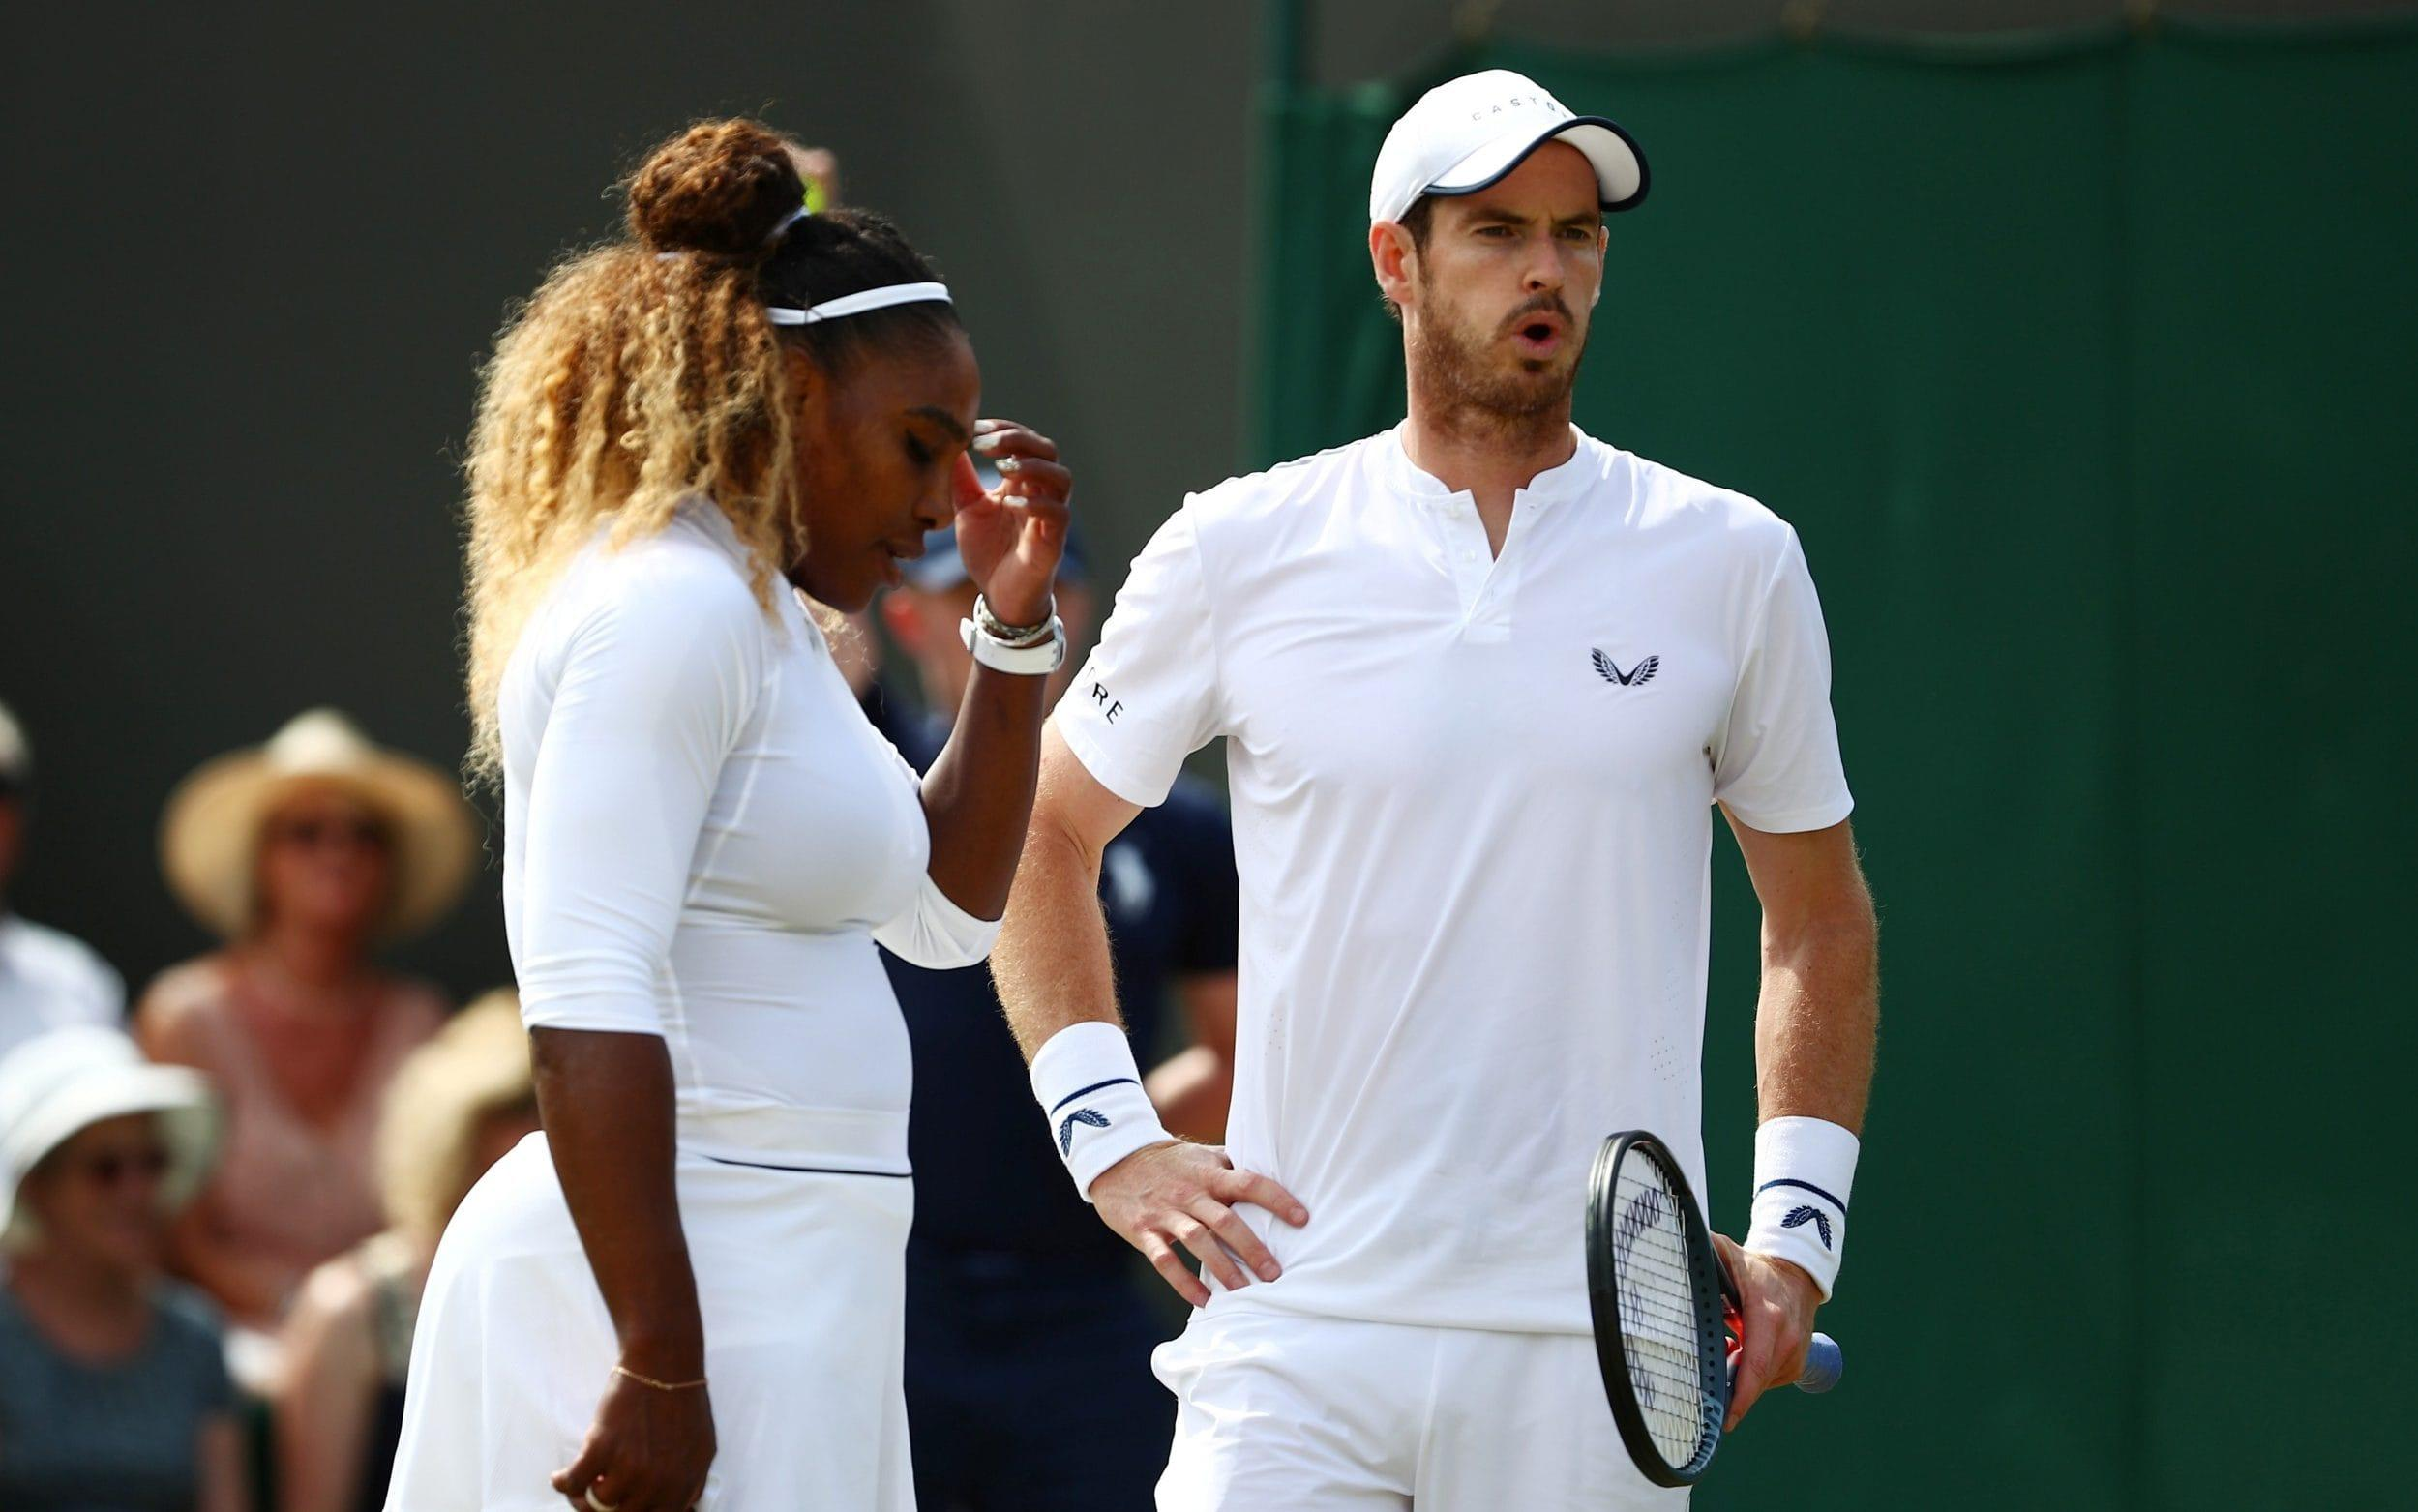 Andy Murray and Serena Williams knocked out of Wimbledon by top seedsBruno Soares and Nicole Melichar